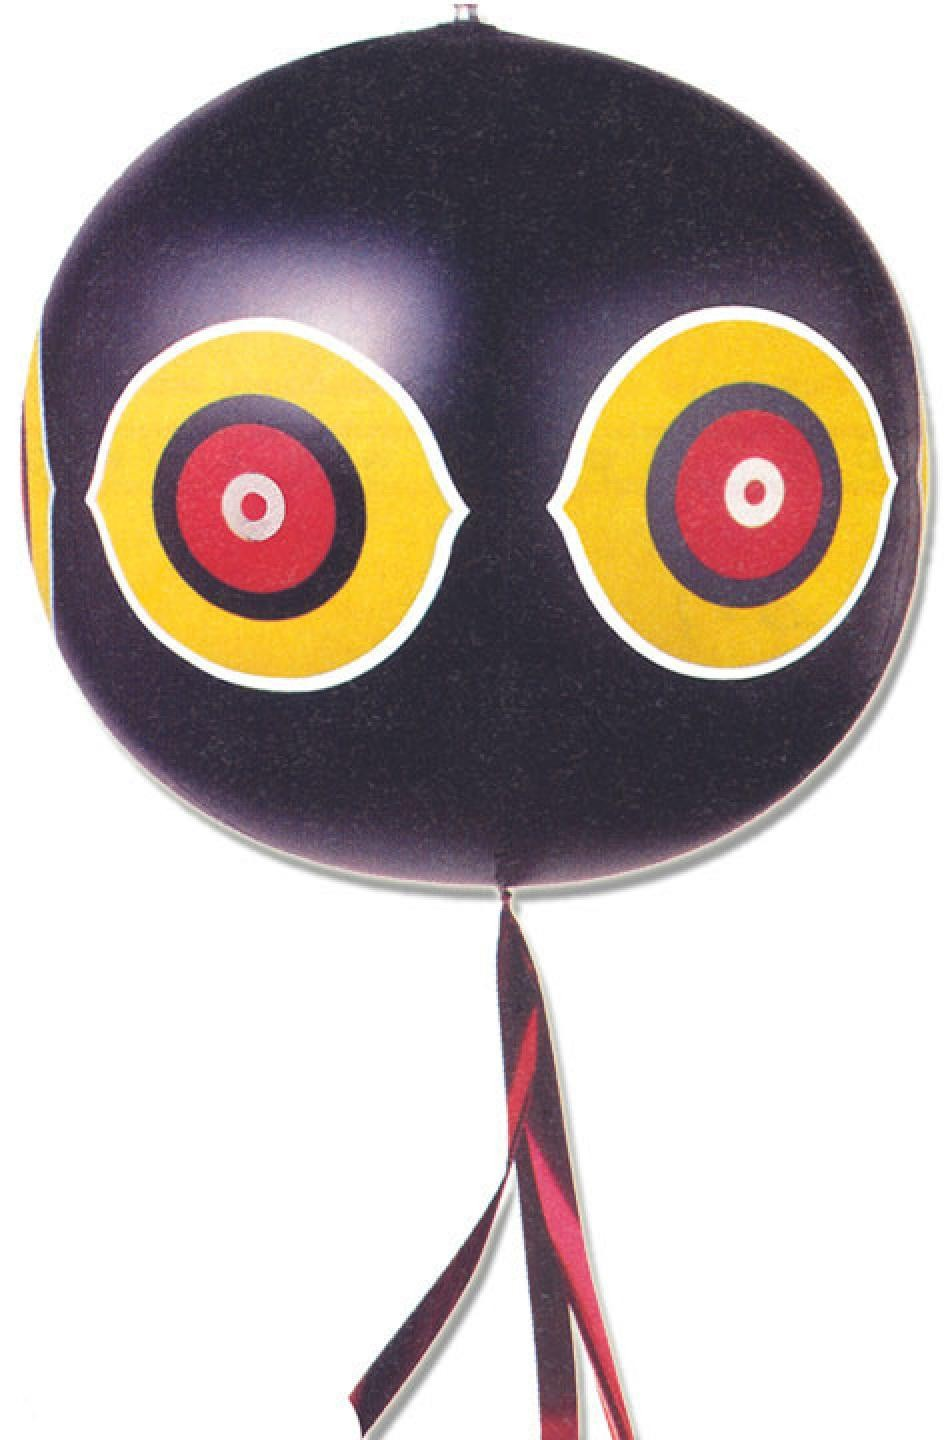 Scare Eye Balloon<br>Black